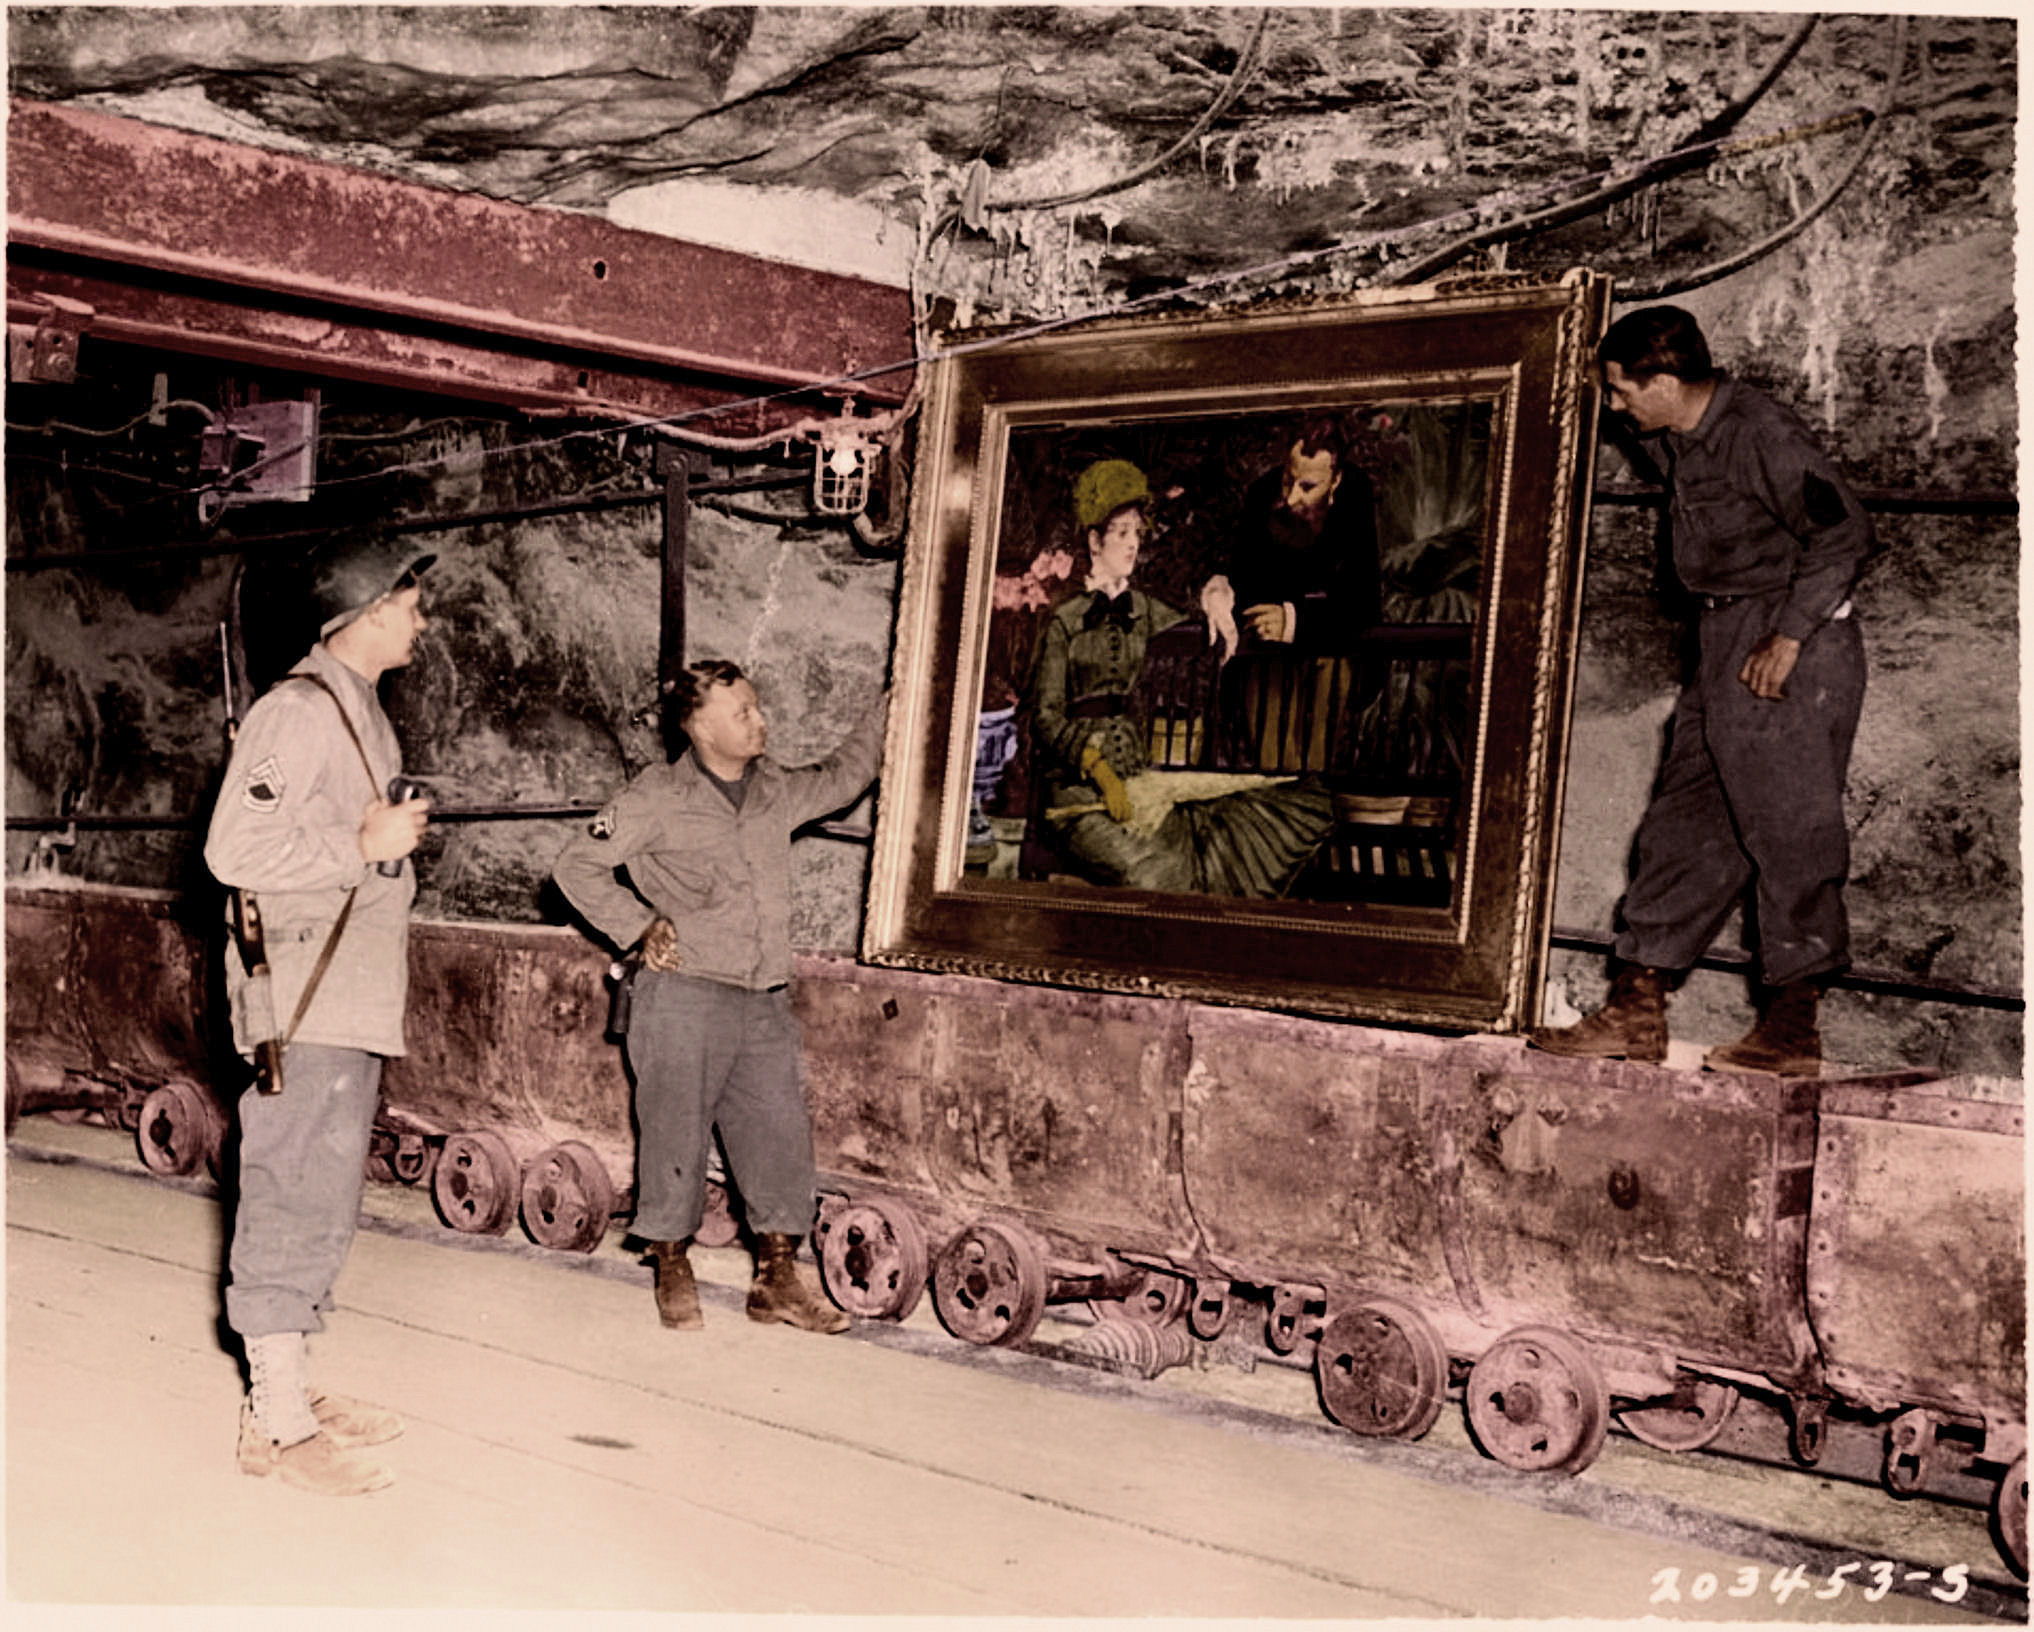 A painting by the french impressionist Edouard Manet, titled Wintergarden, discovered in the vault at Merkers. 42545